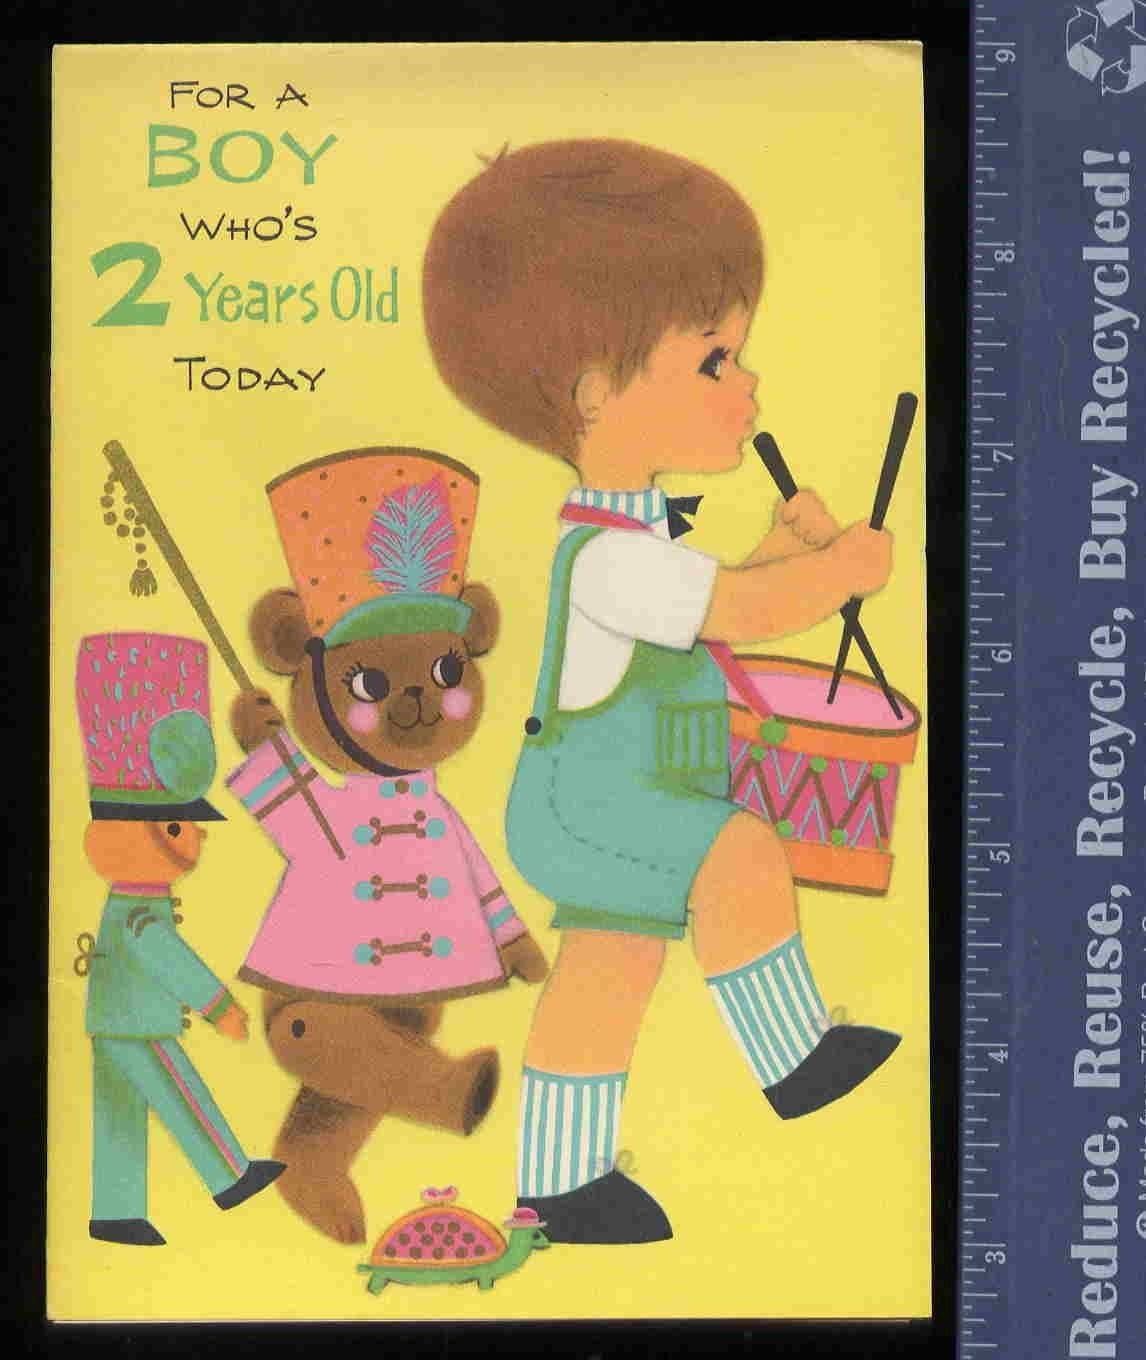 Vintage 2 Year Old Boy BIRTHDAY Greeting CARD By